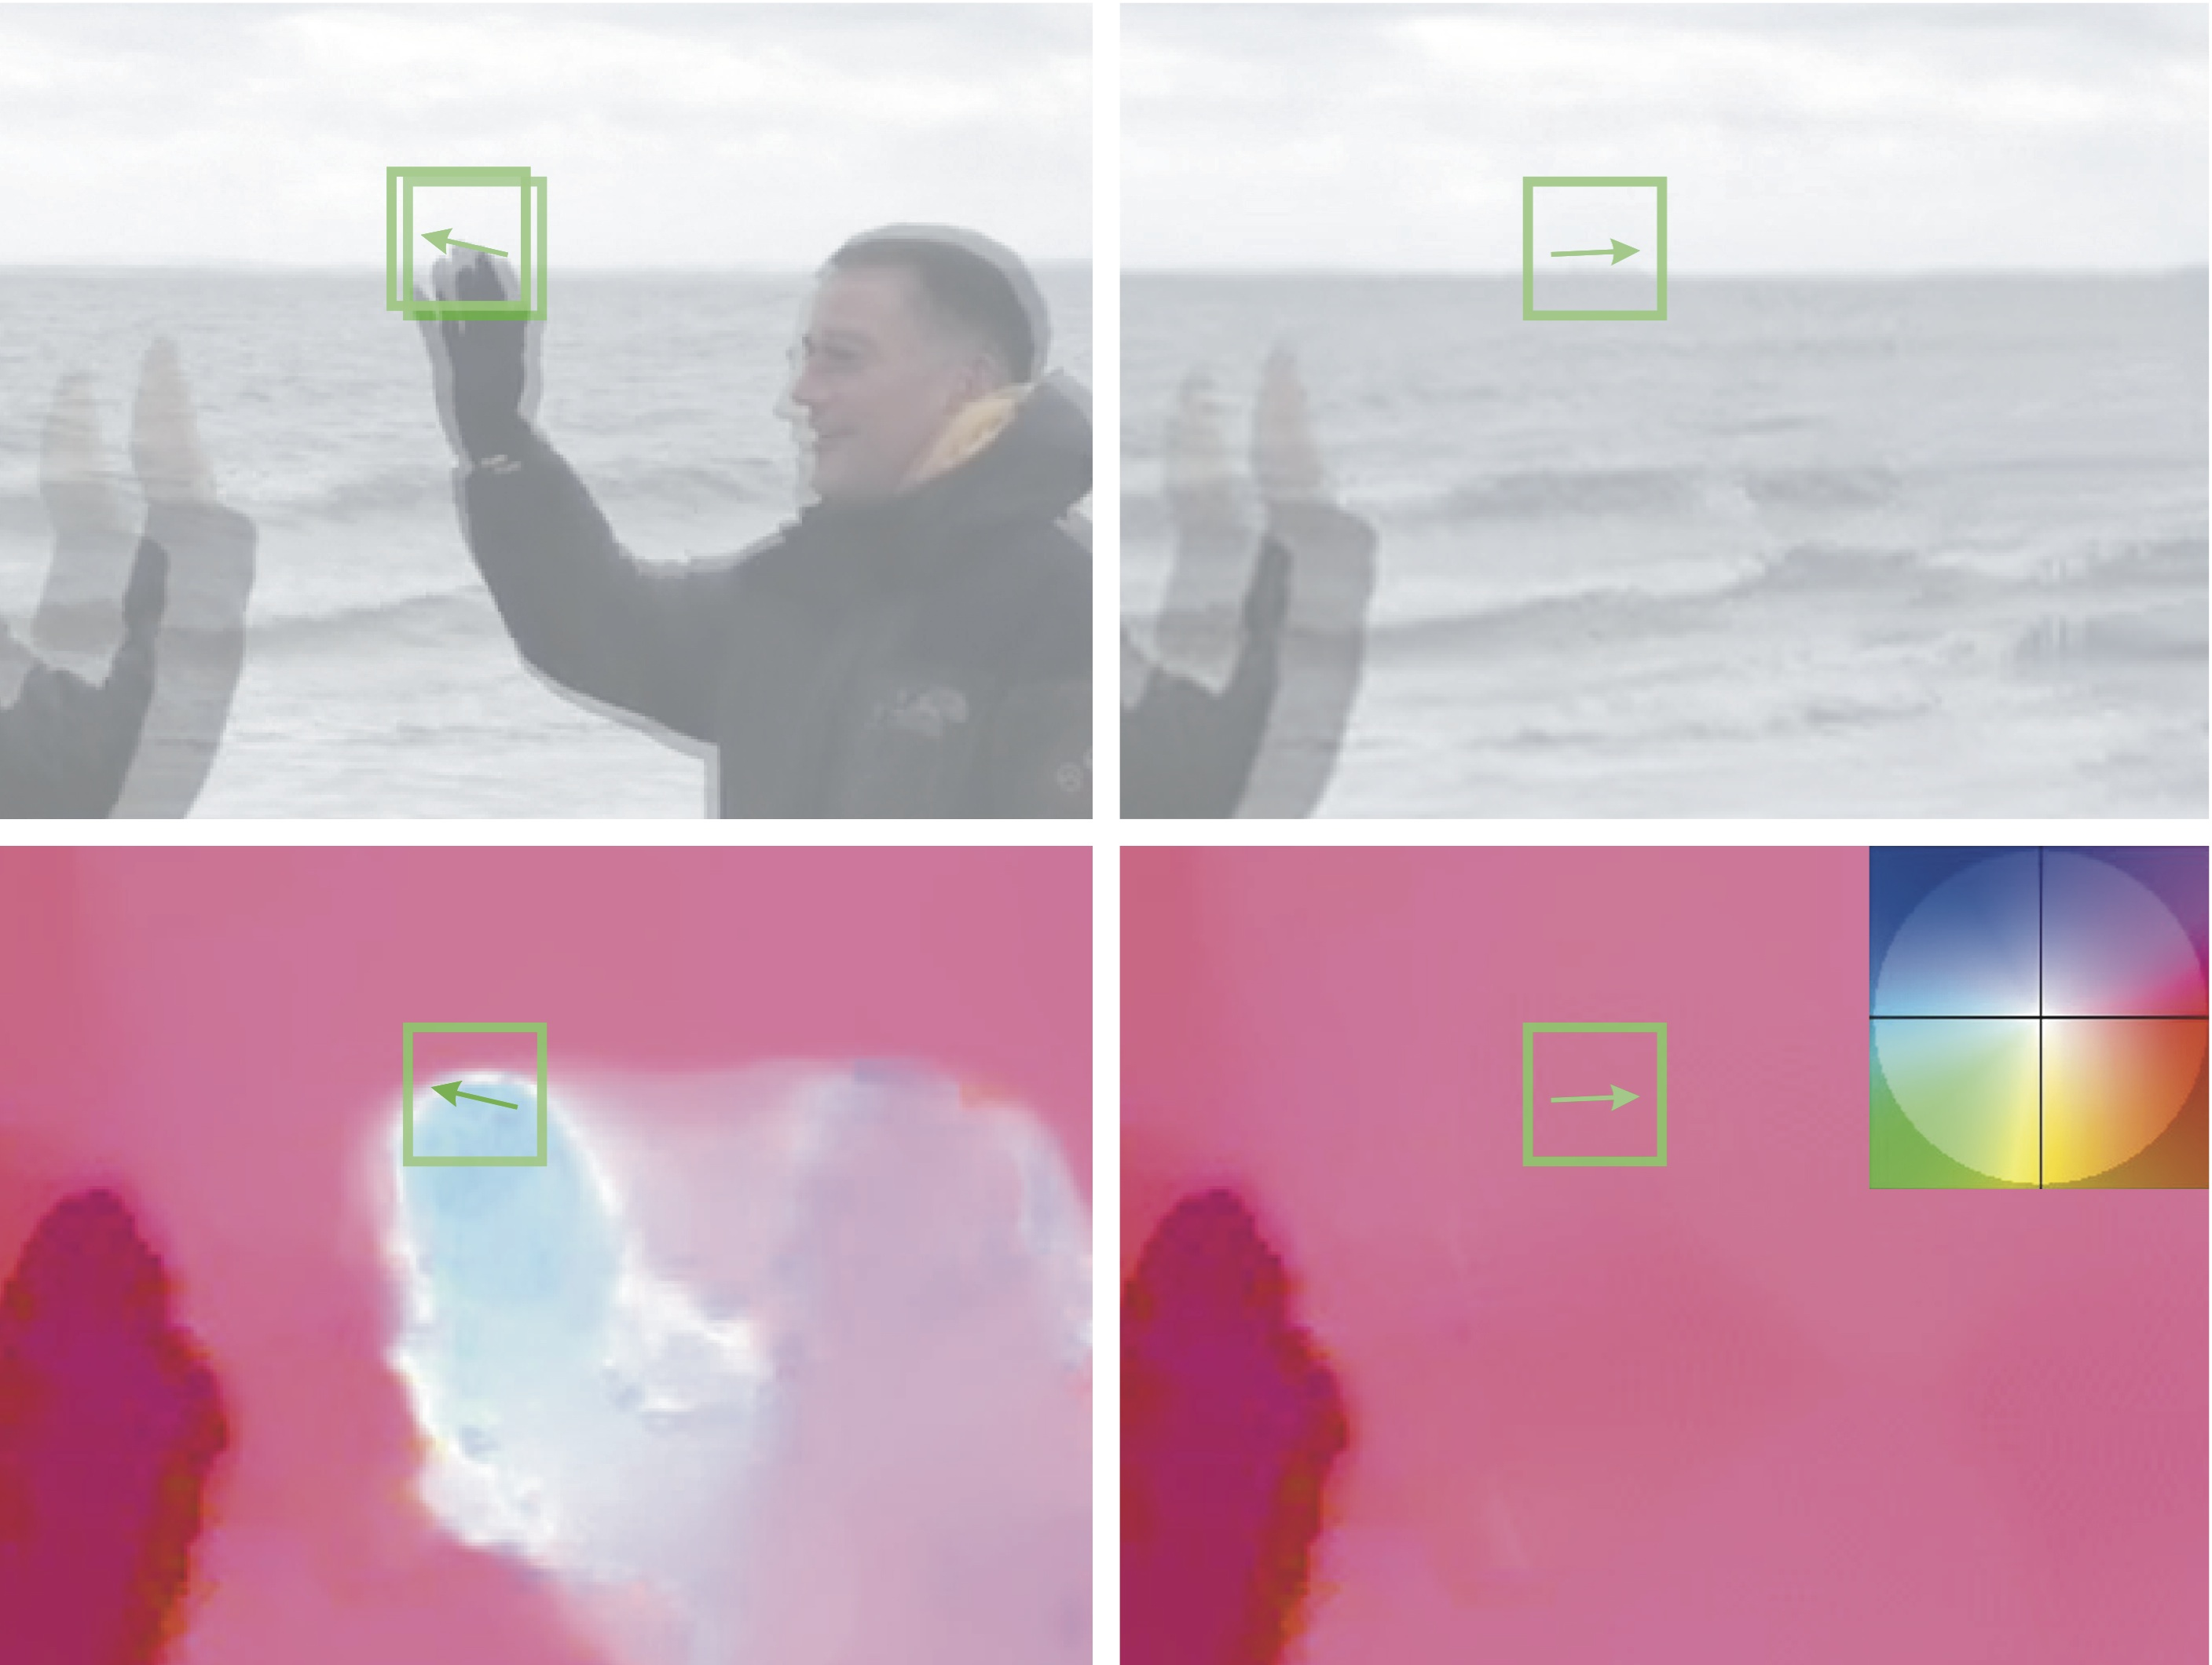 master thesis object recognition